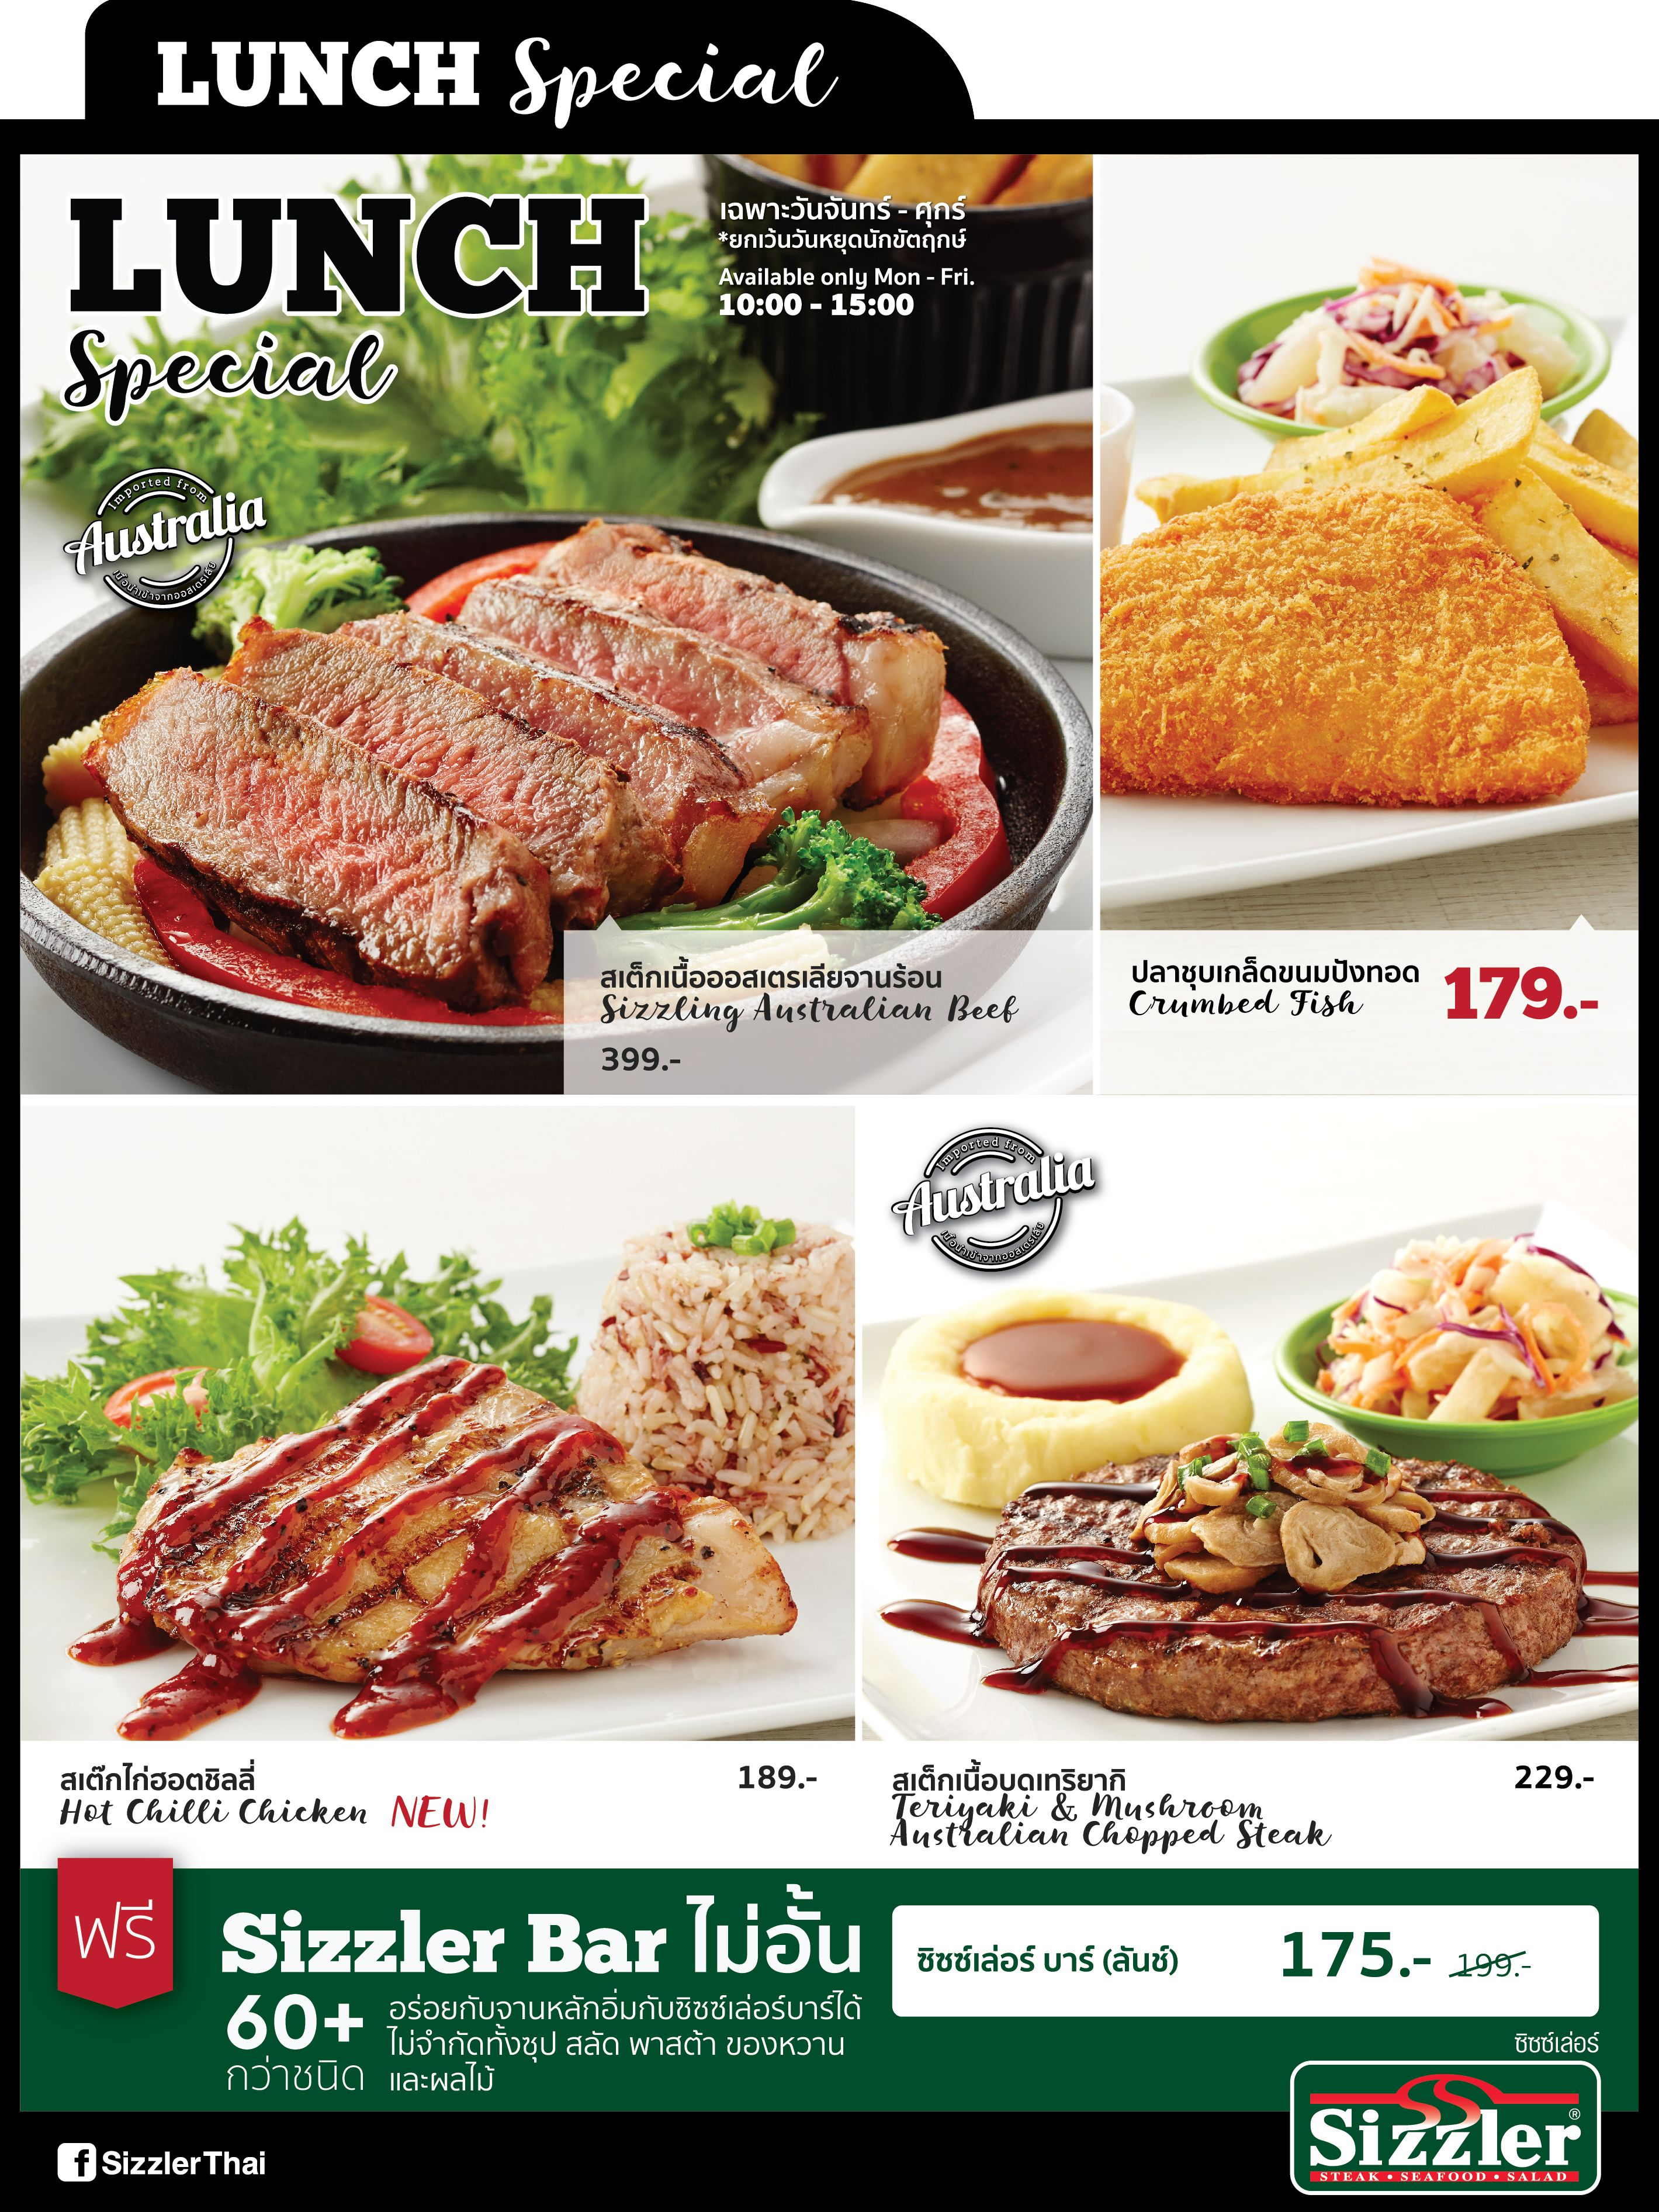 These are usually holiday-based and depend on location. Call ahead to see when your Sizzler is participating. Holiday Specials: Follow Sizzler on social media to hear about holiday specials, including offers for Father's Day, Veterans Day and more. MENU GUIDE Sizzler serves up way more than just great cuts of meat.